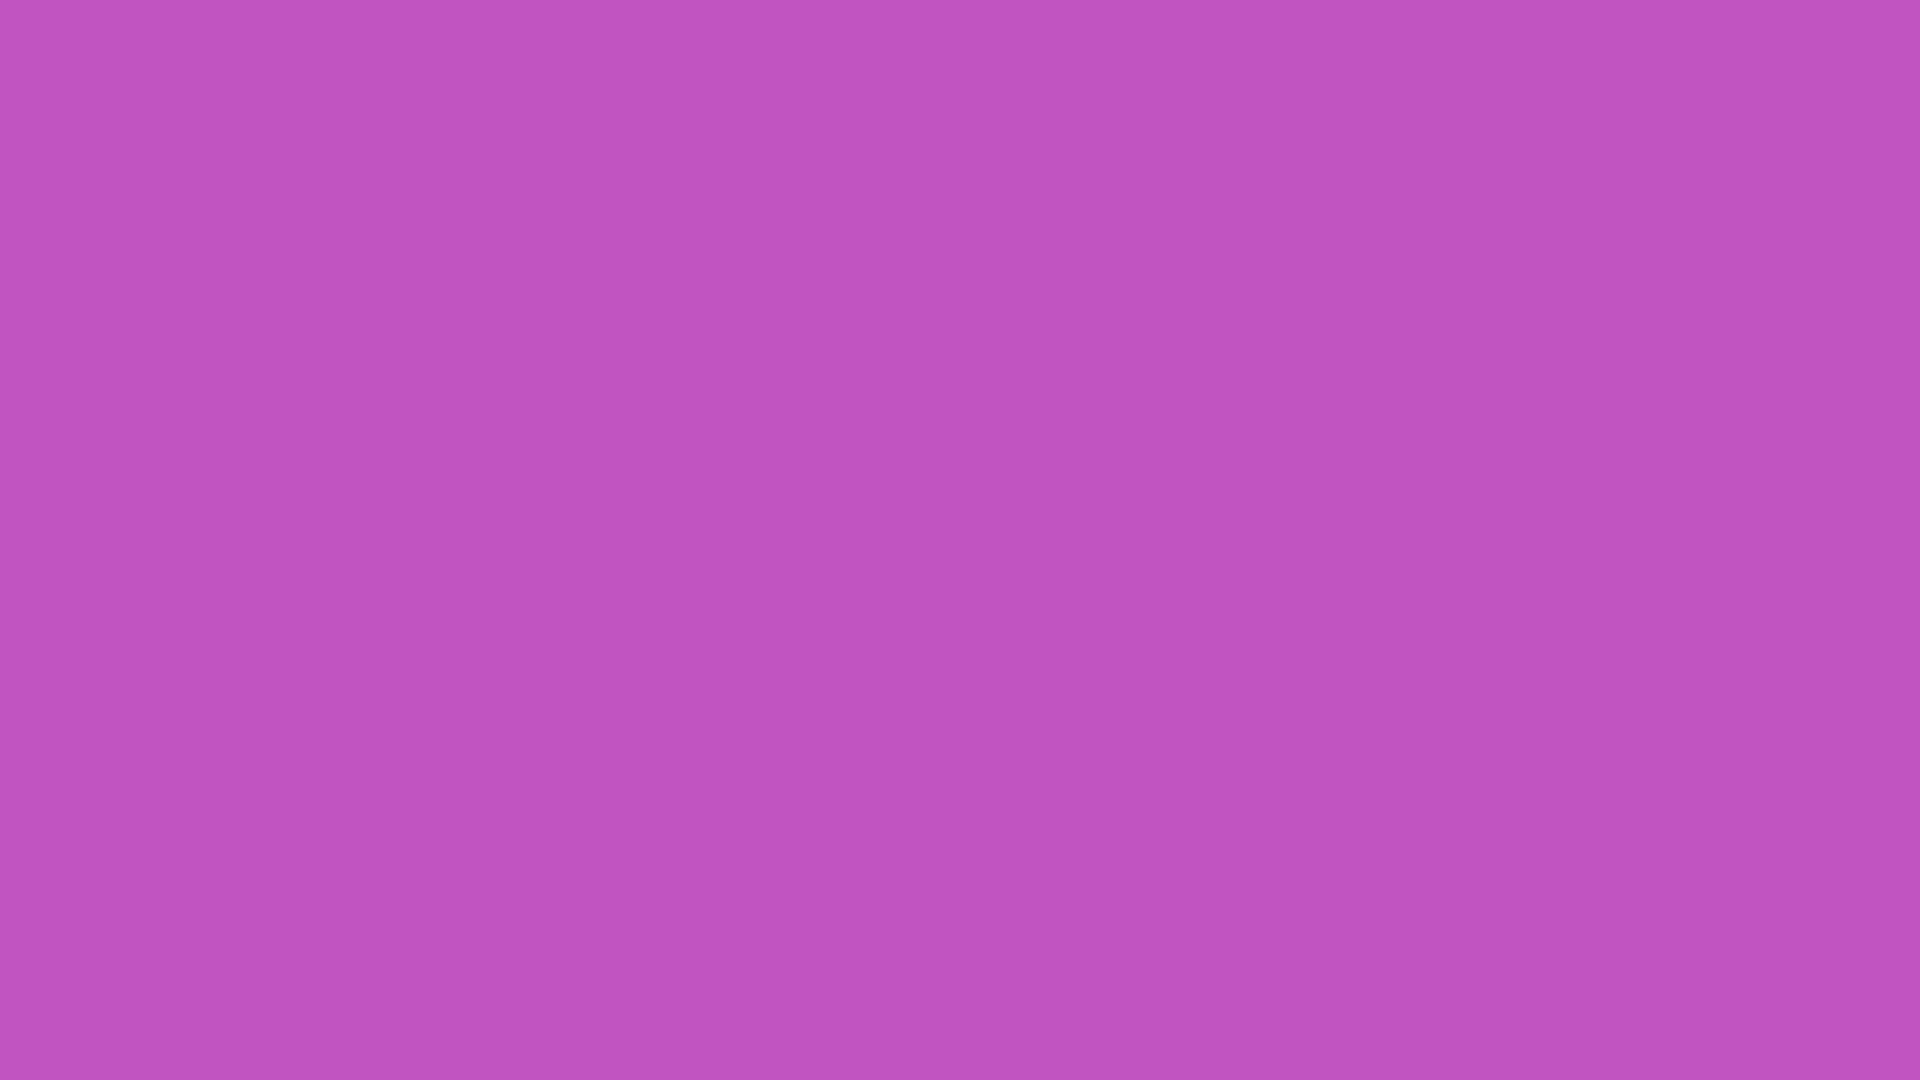 1920x1080 Deep Fuchsia Solid Color Background